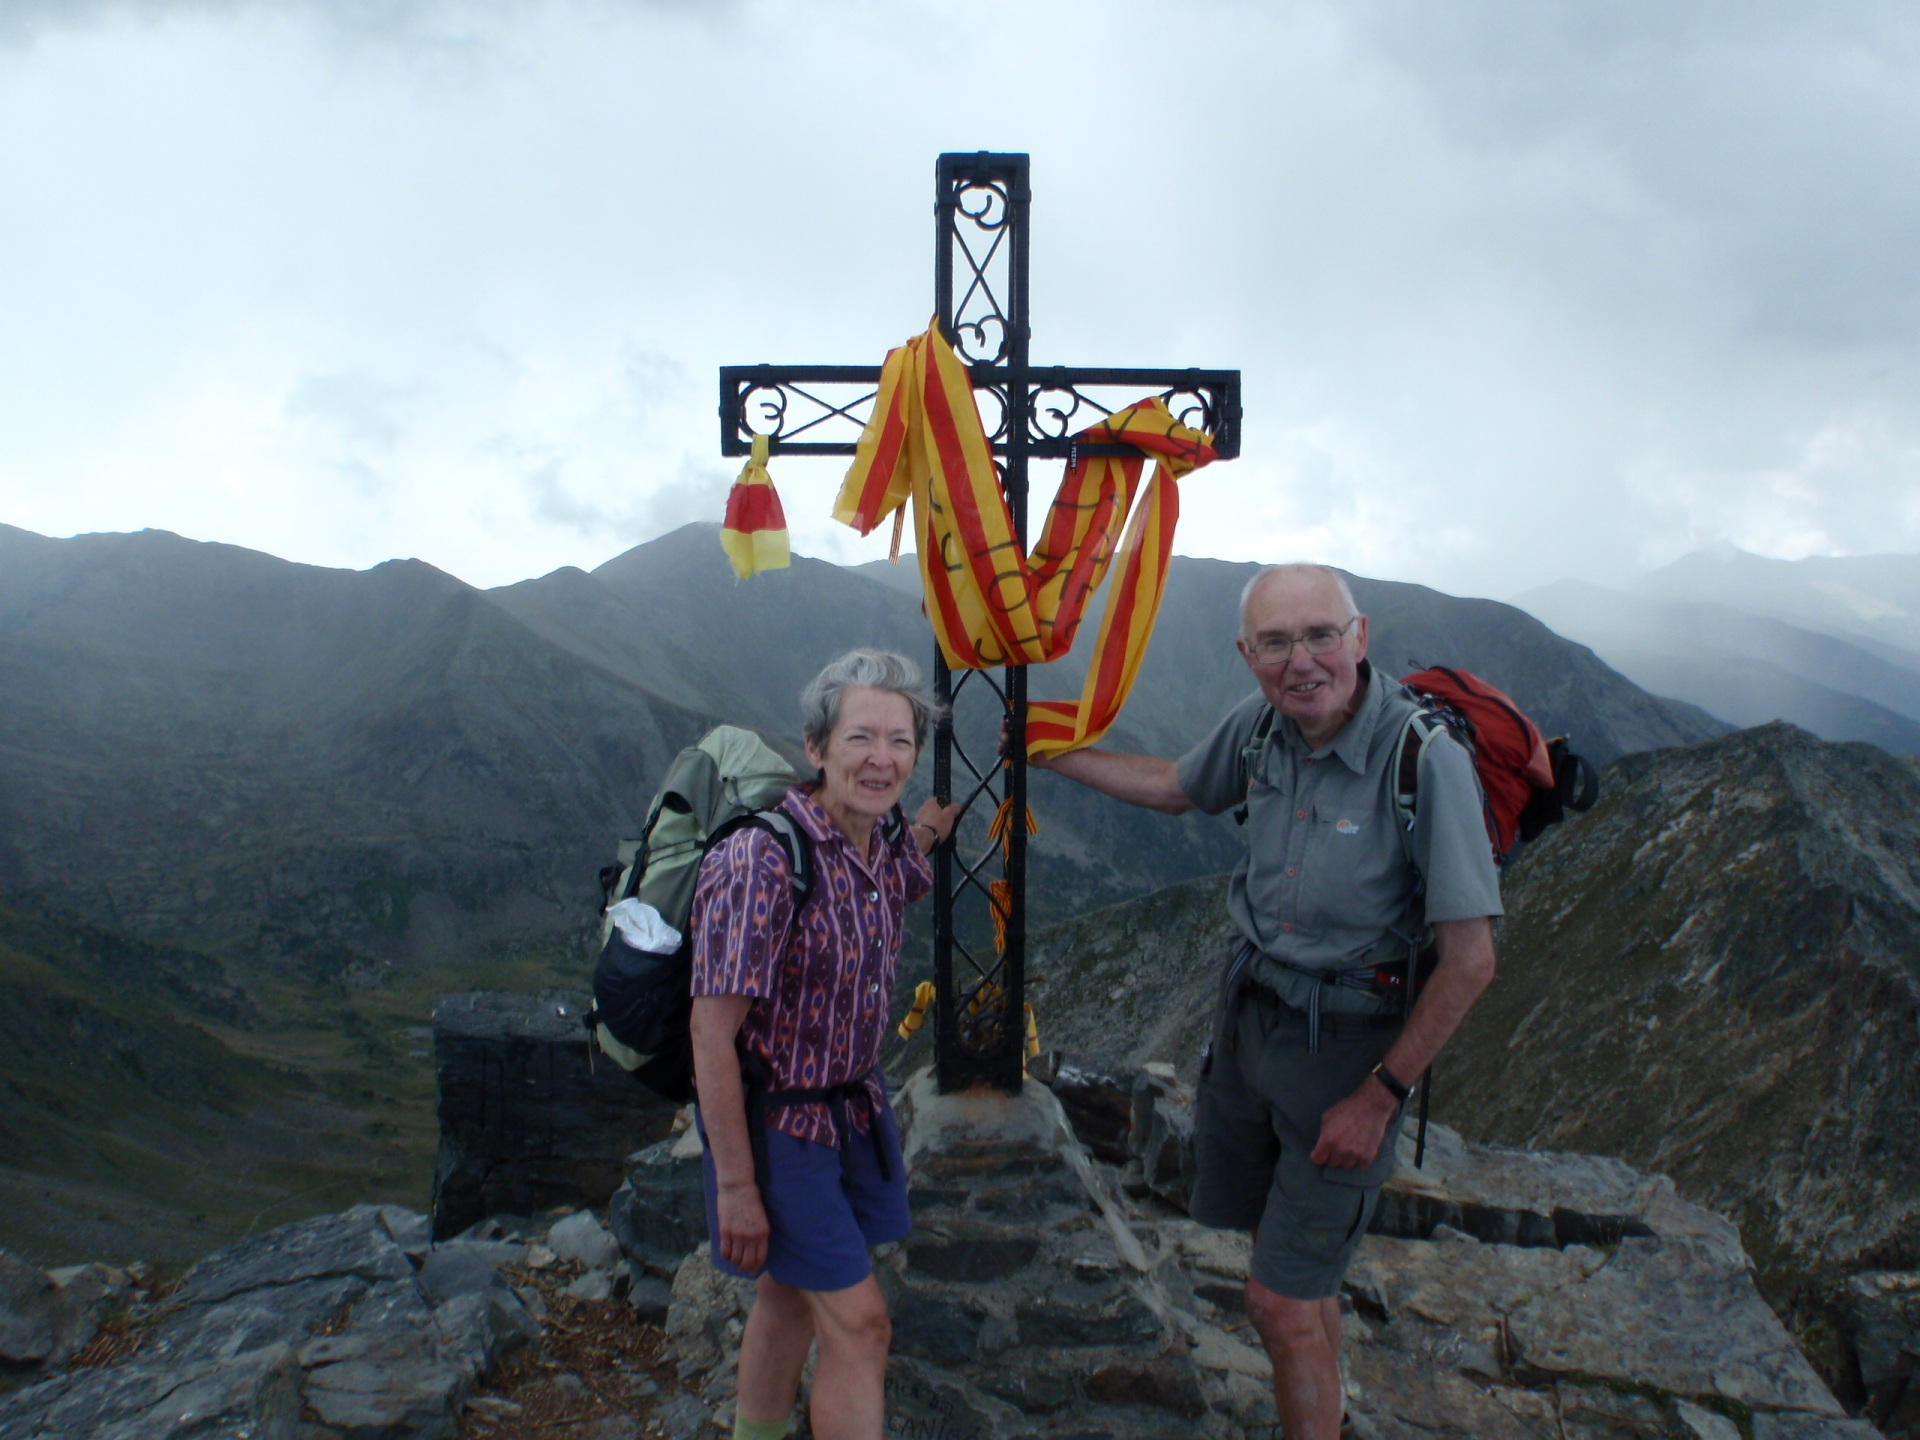 Age is no barrier when trekking along the mountain frontier of the Pyrenees